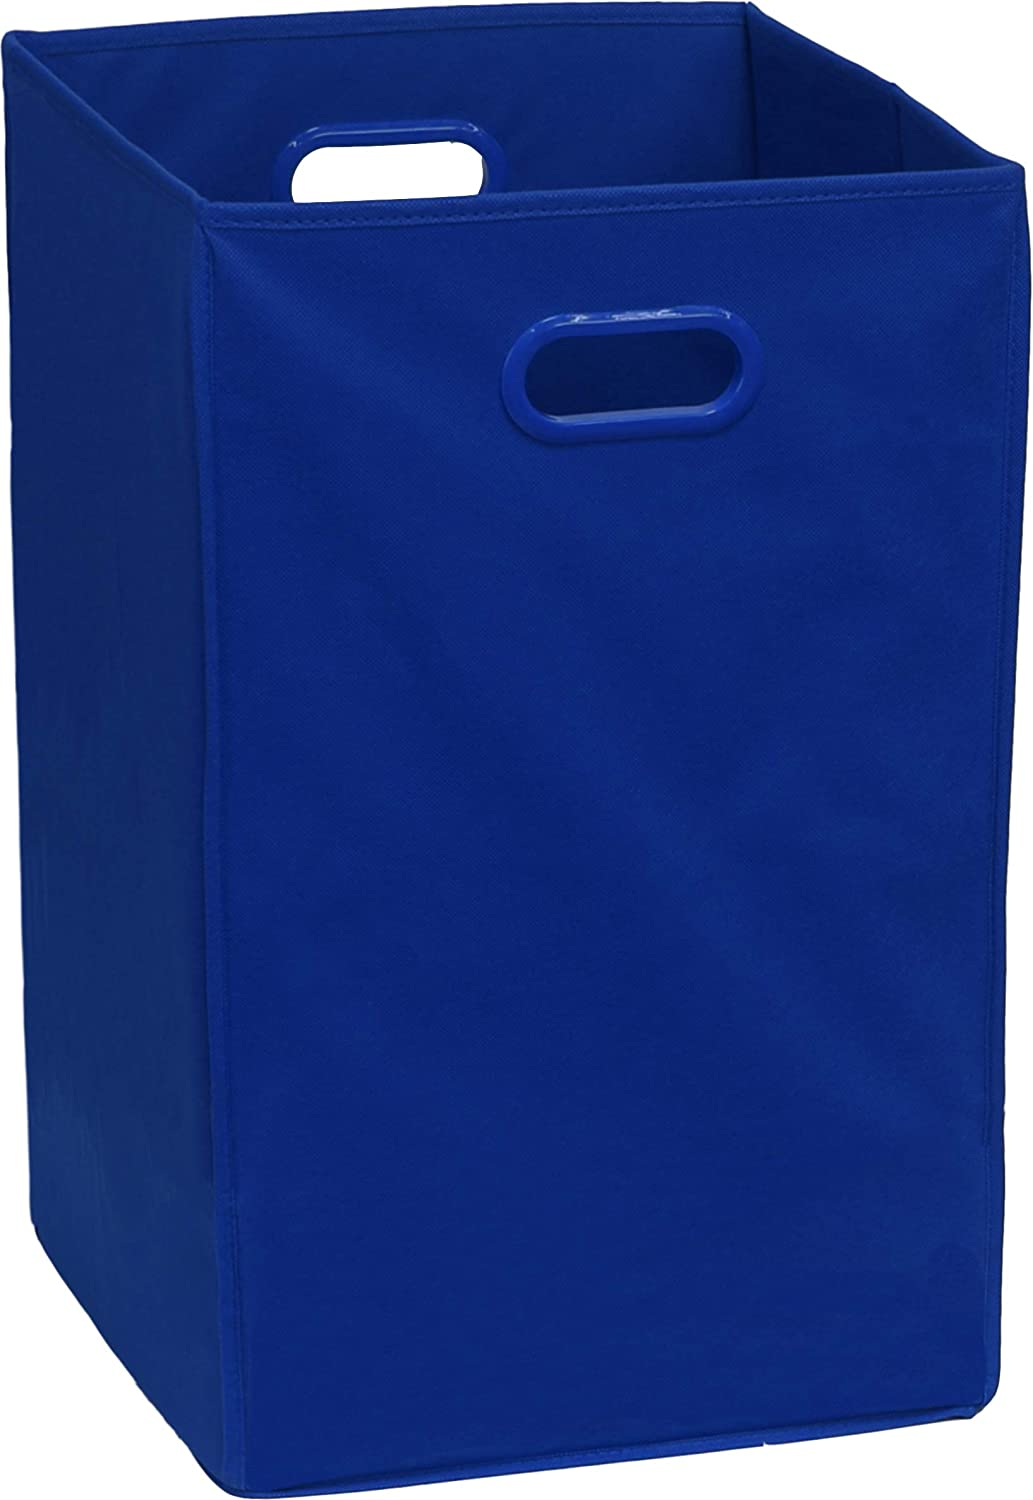 Simple Houseware Foldable Closet Laundry Hamper Basket, Dark Blue